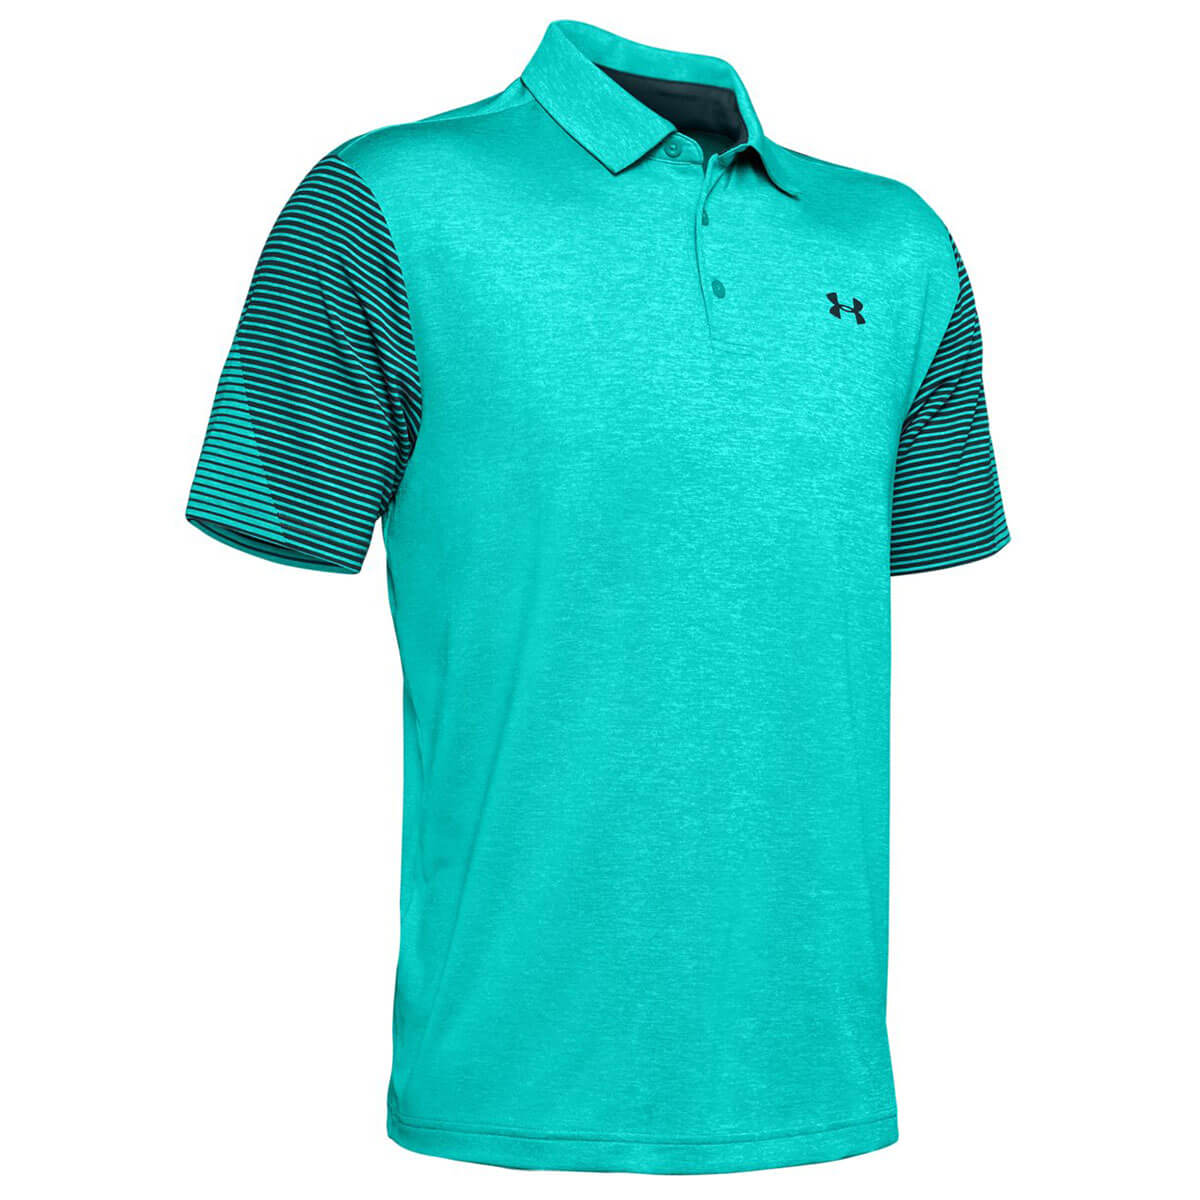 Under-Armour-Mens-2019-Playoff-Polo-2-0-Breathable-Light-Stretch-Polo-Shirt thumbnail 118